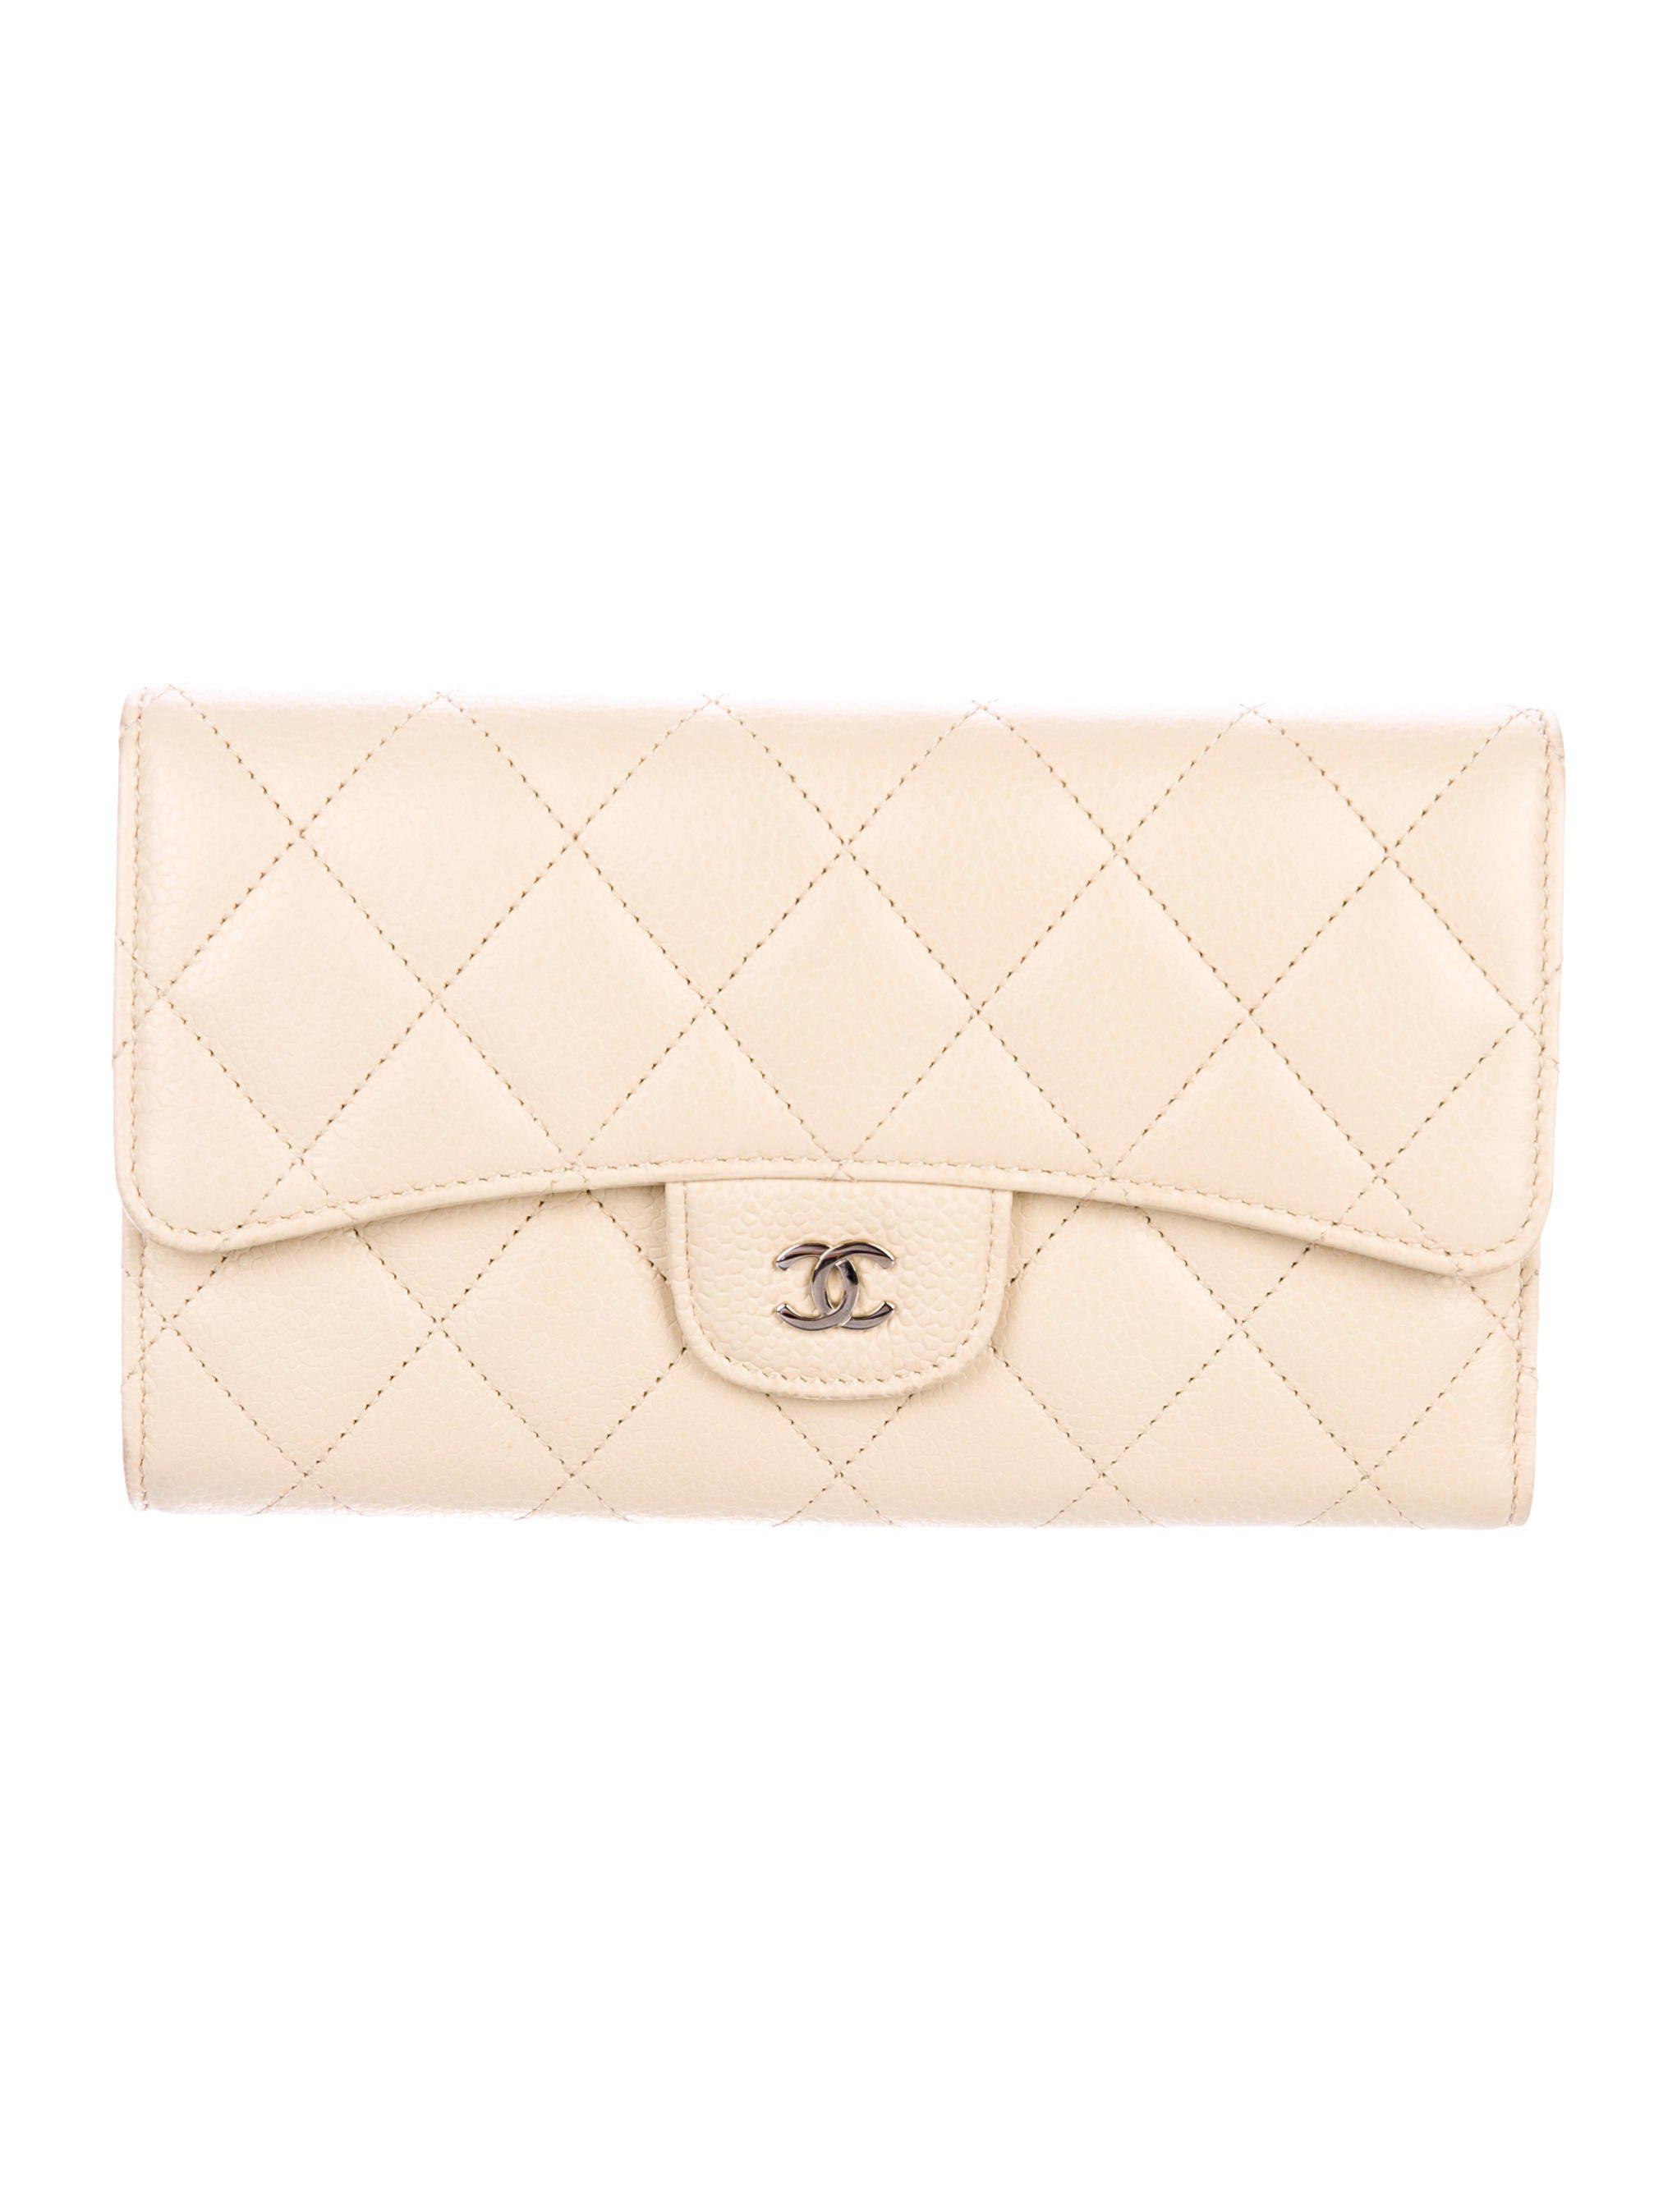 4168ae9bfaf7 Lyst - Chanel Quilted Caviar Continental Wallet Silver in Metallic